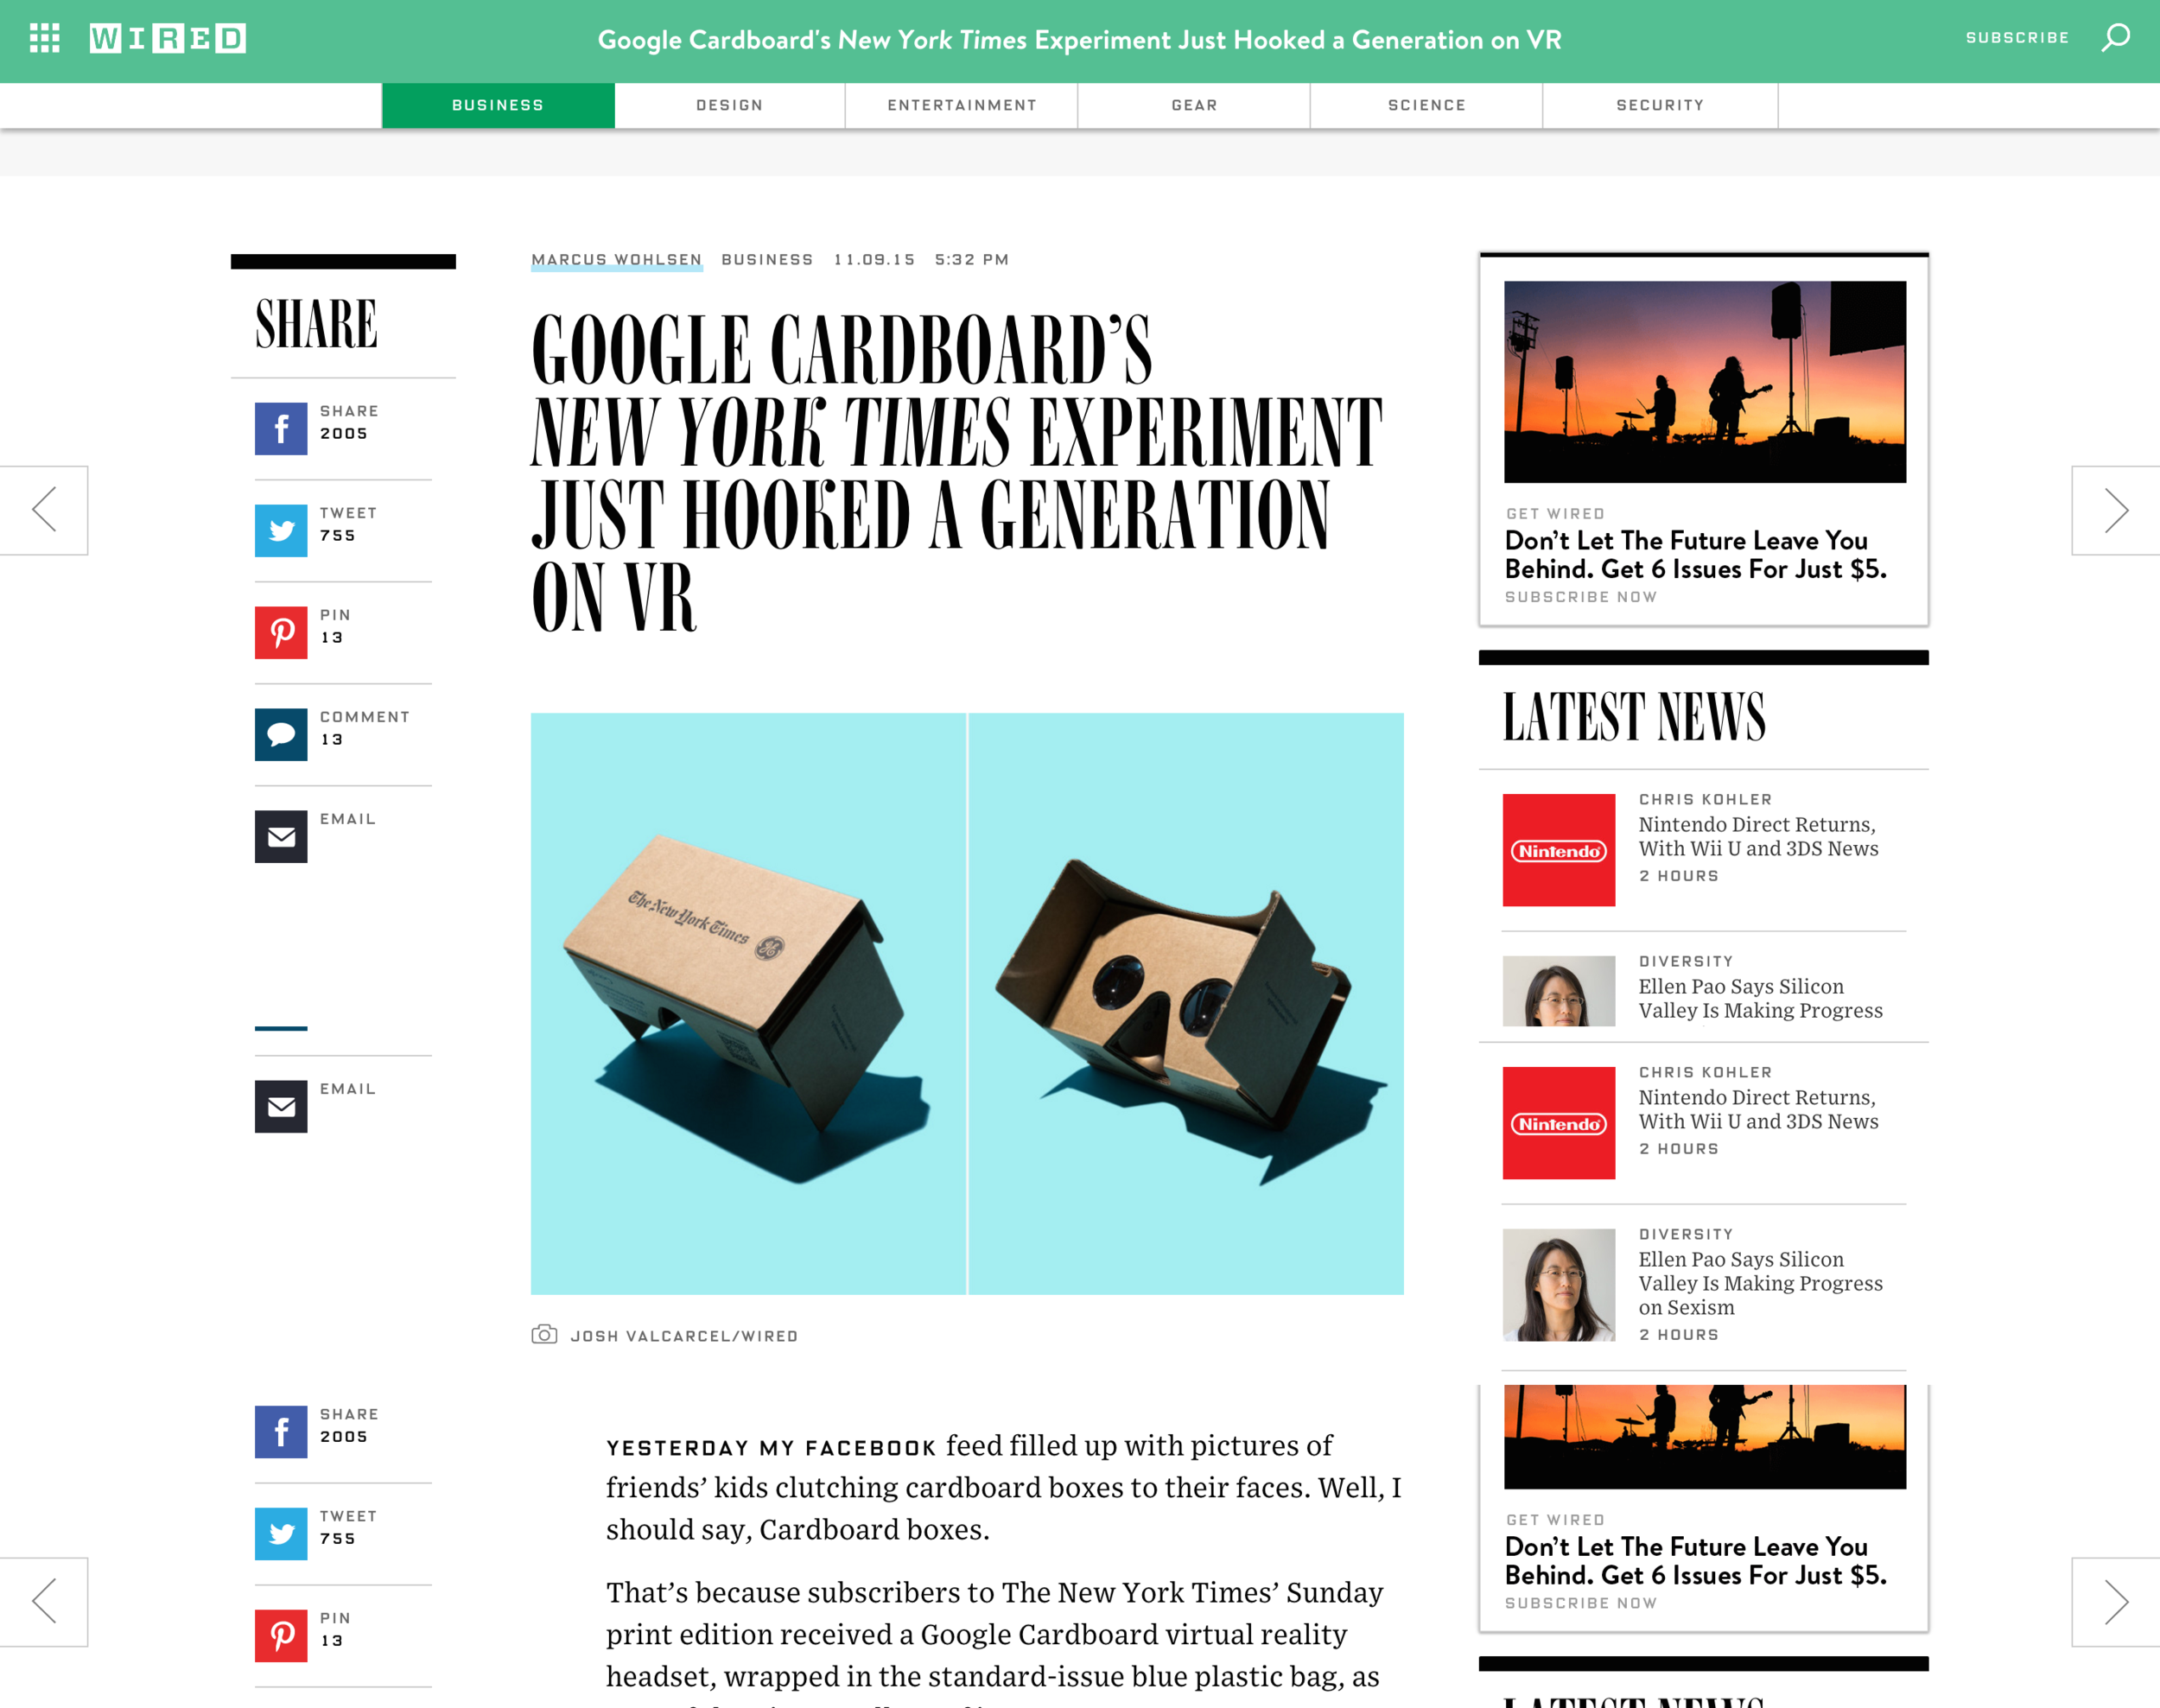 screencapture-www-wired-com-2015-11-google-cardboards-new-york-times-experiment-just-hooked-a-generation-on-vr-1447202613645.png